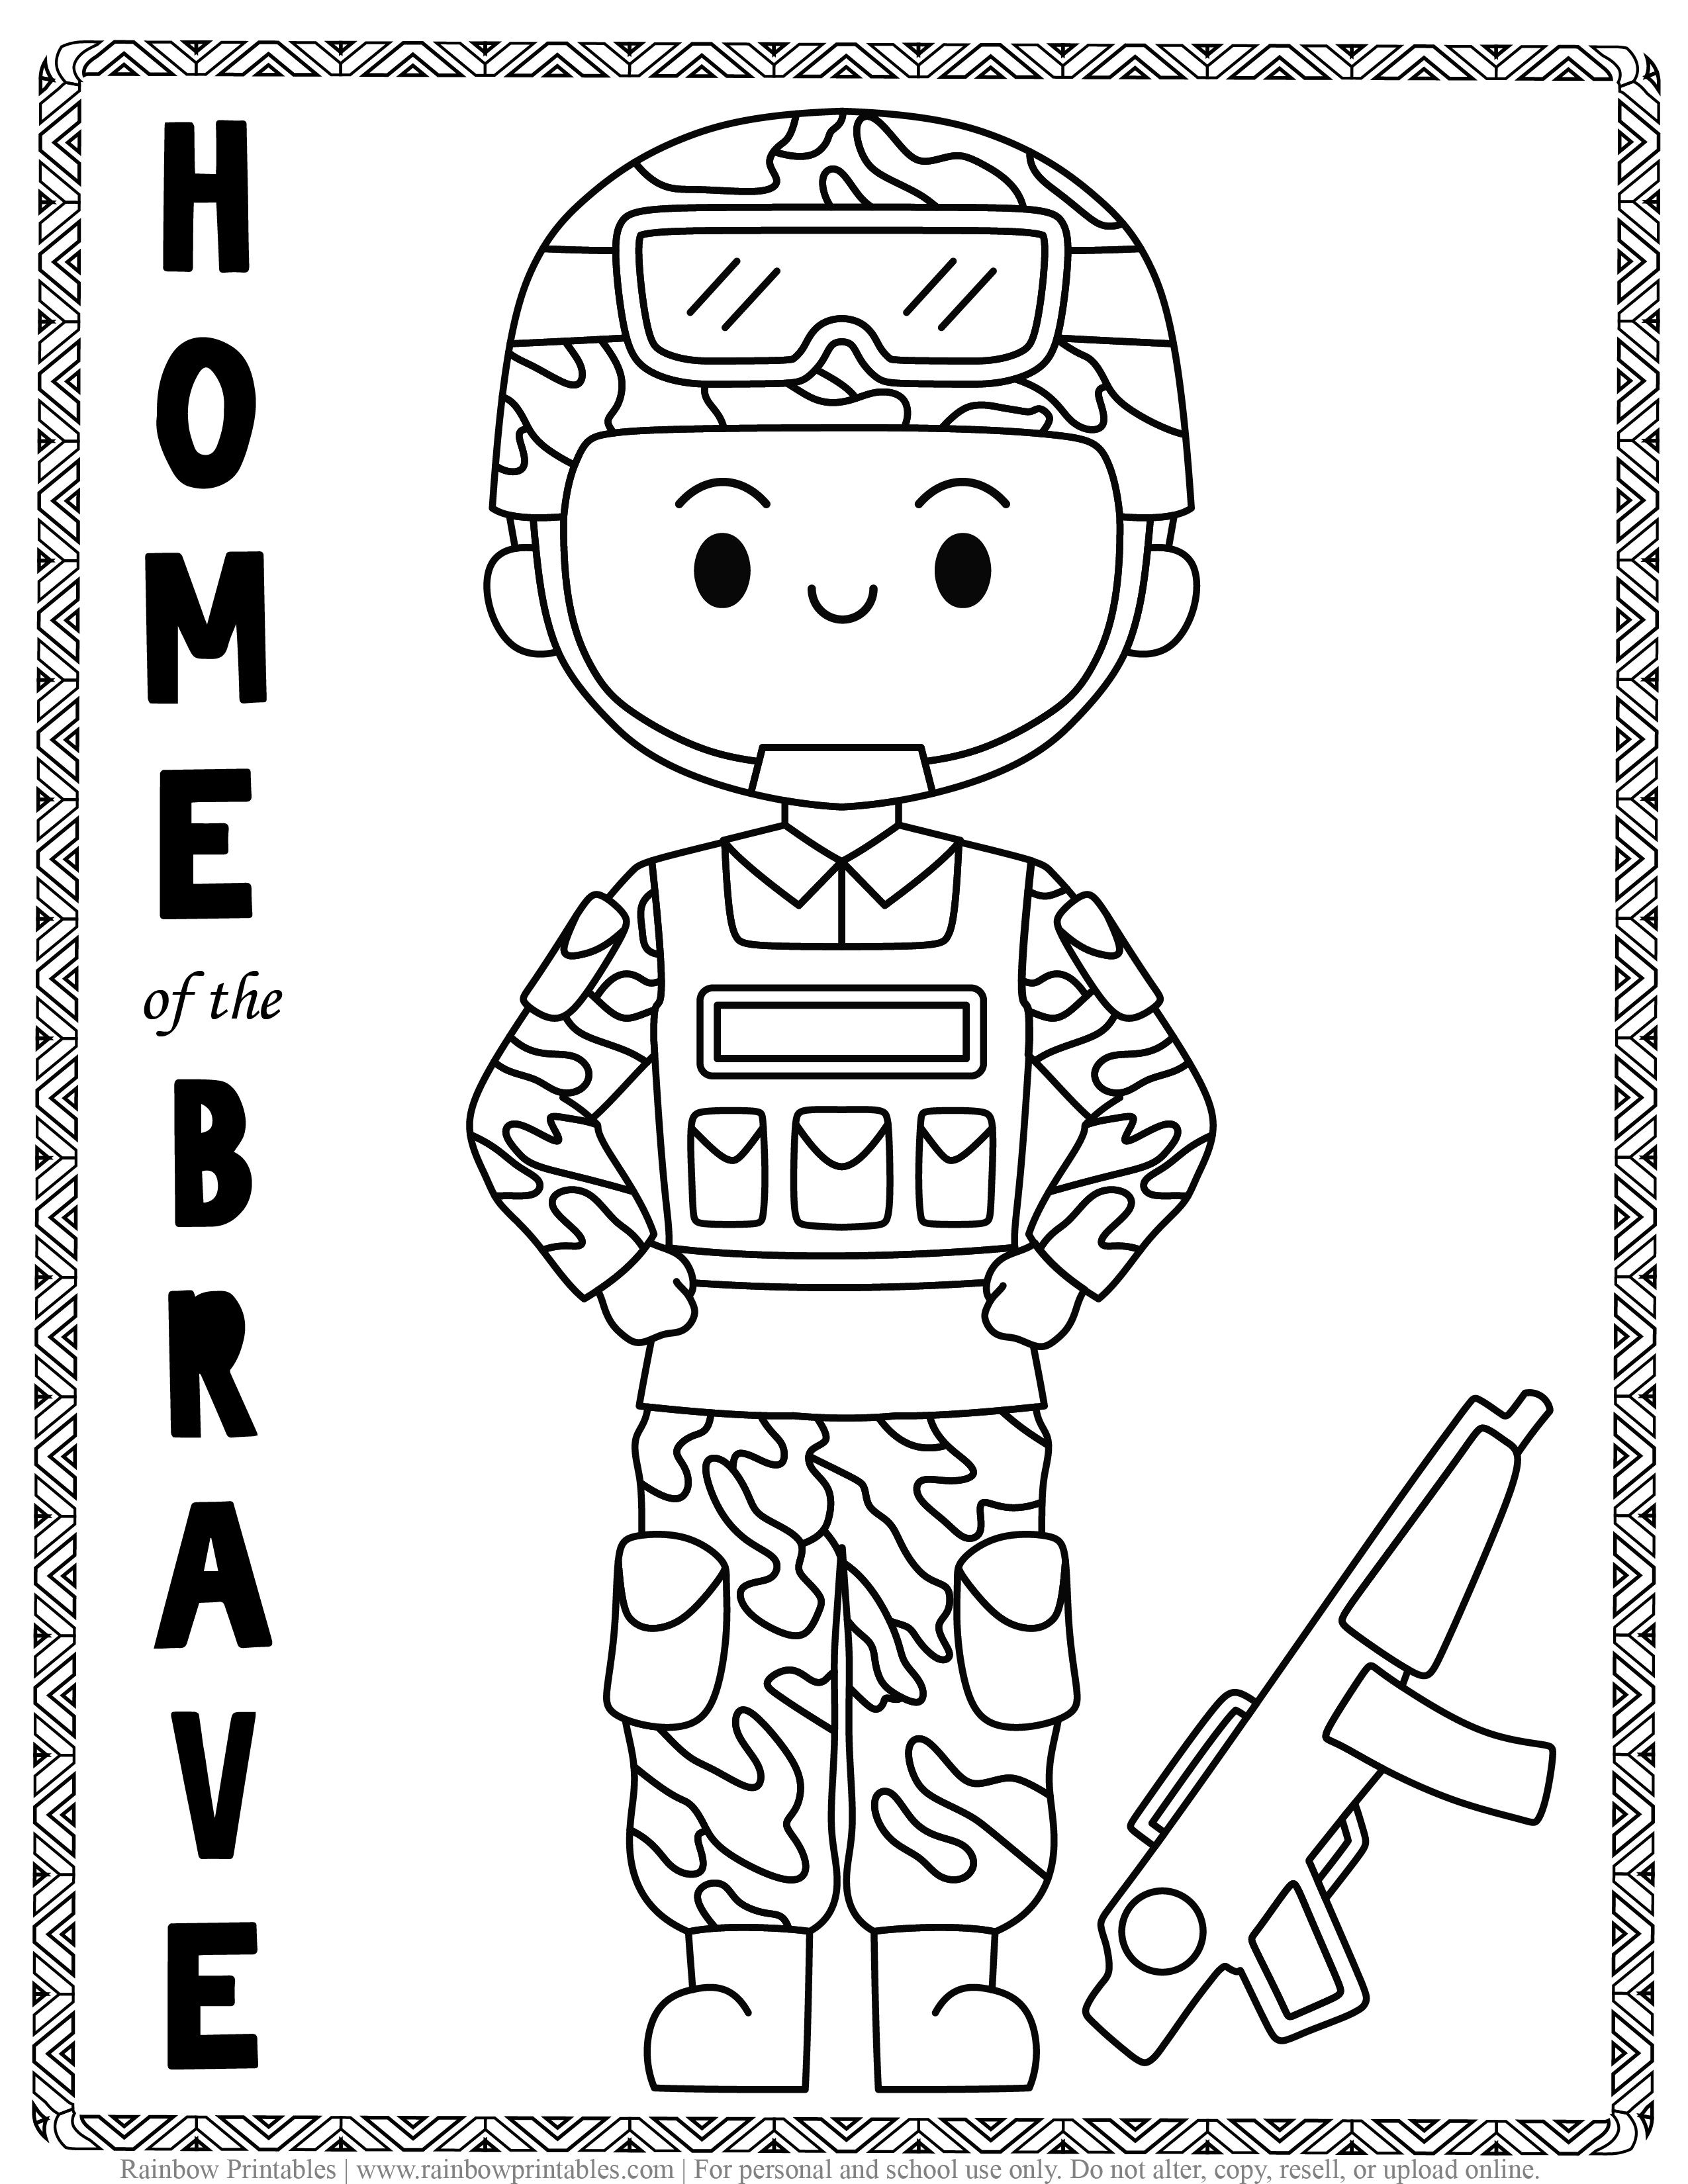 ARMY SOLDIER home of the BRAVE Kids Patriotic July 4th independence Day Printables for Children, Toddlers, America Coloring Pages, Activity for Preschool